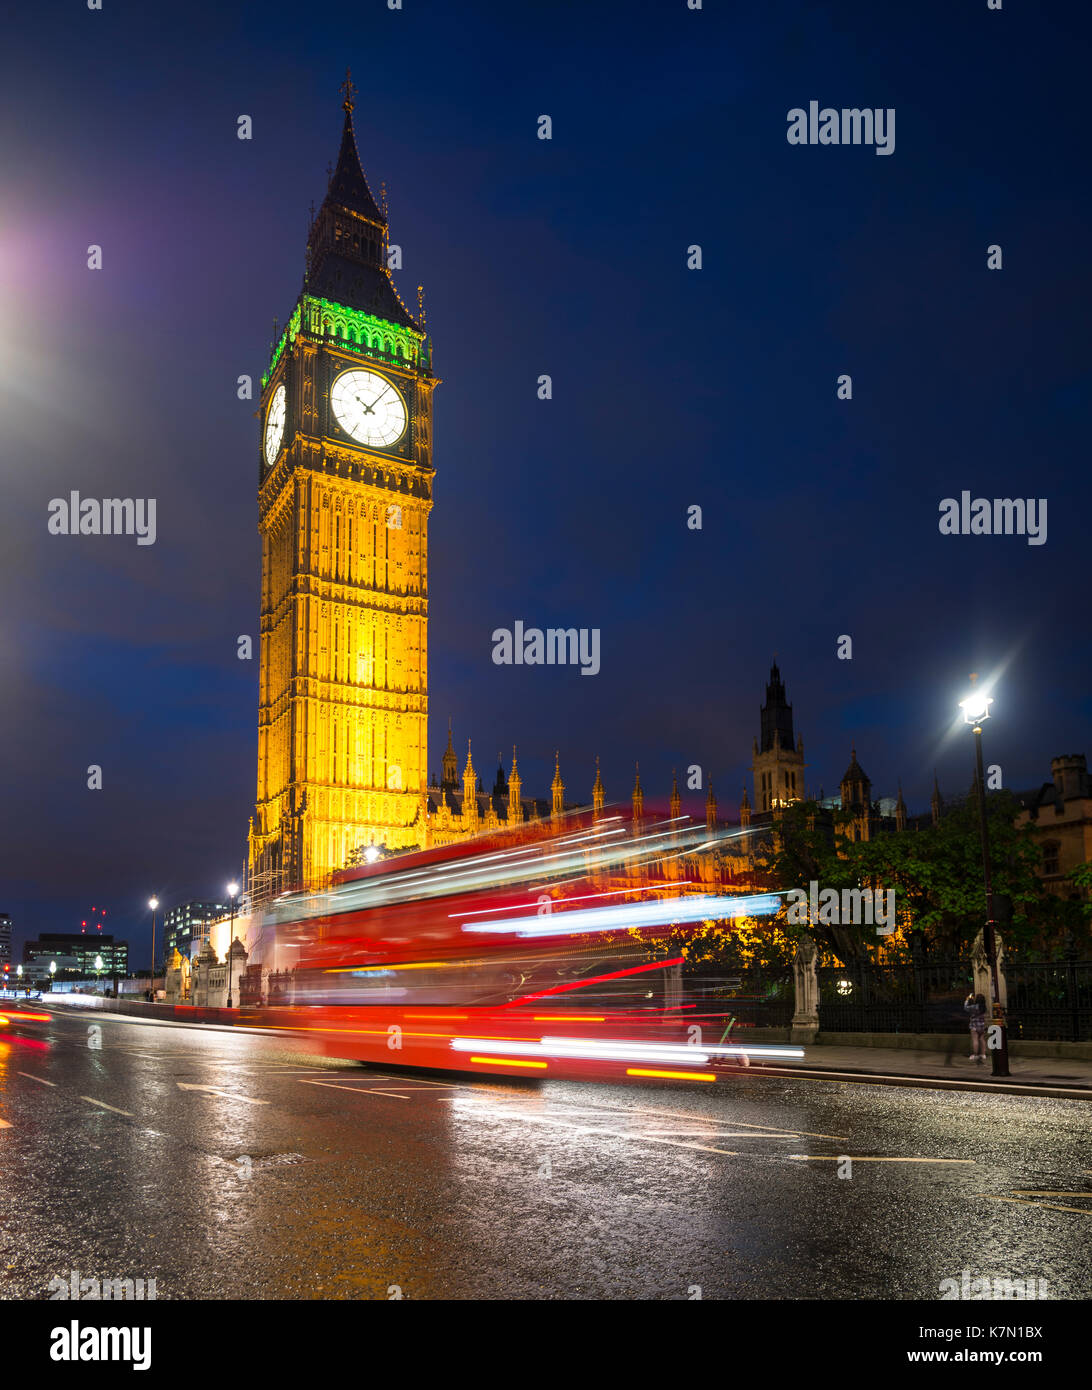 Red double-decker bus in front of Big Ben, Houses of Parliament, light tracks, night scene, City of Westminster, London - Stock Image